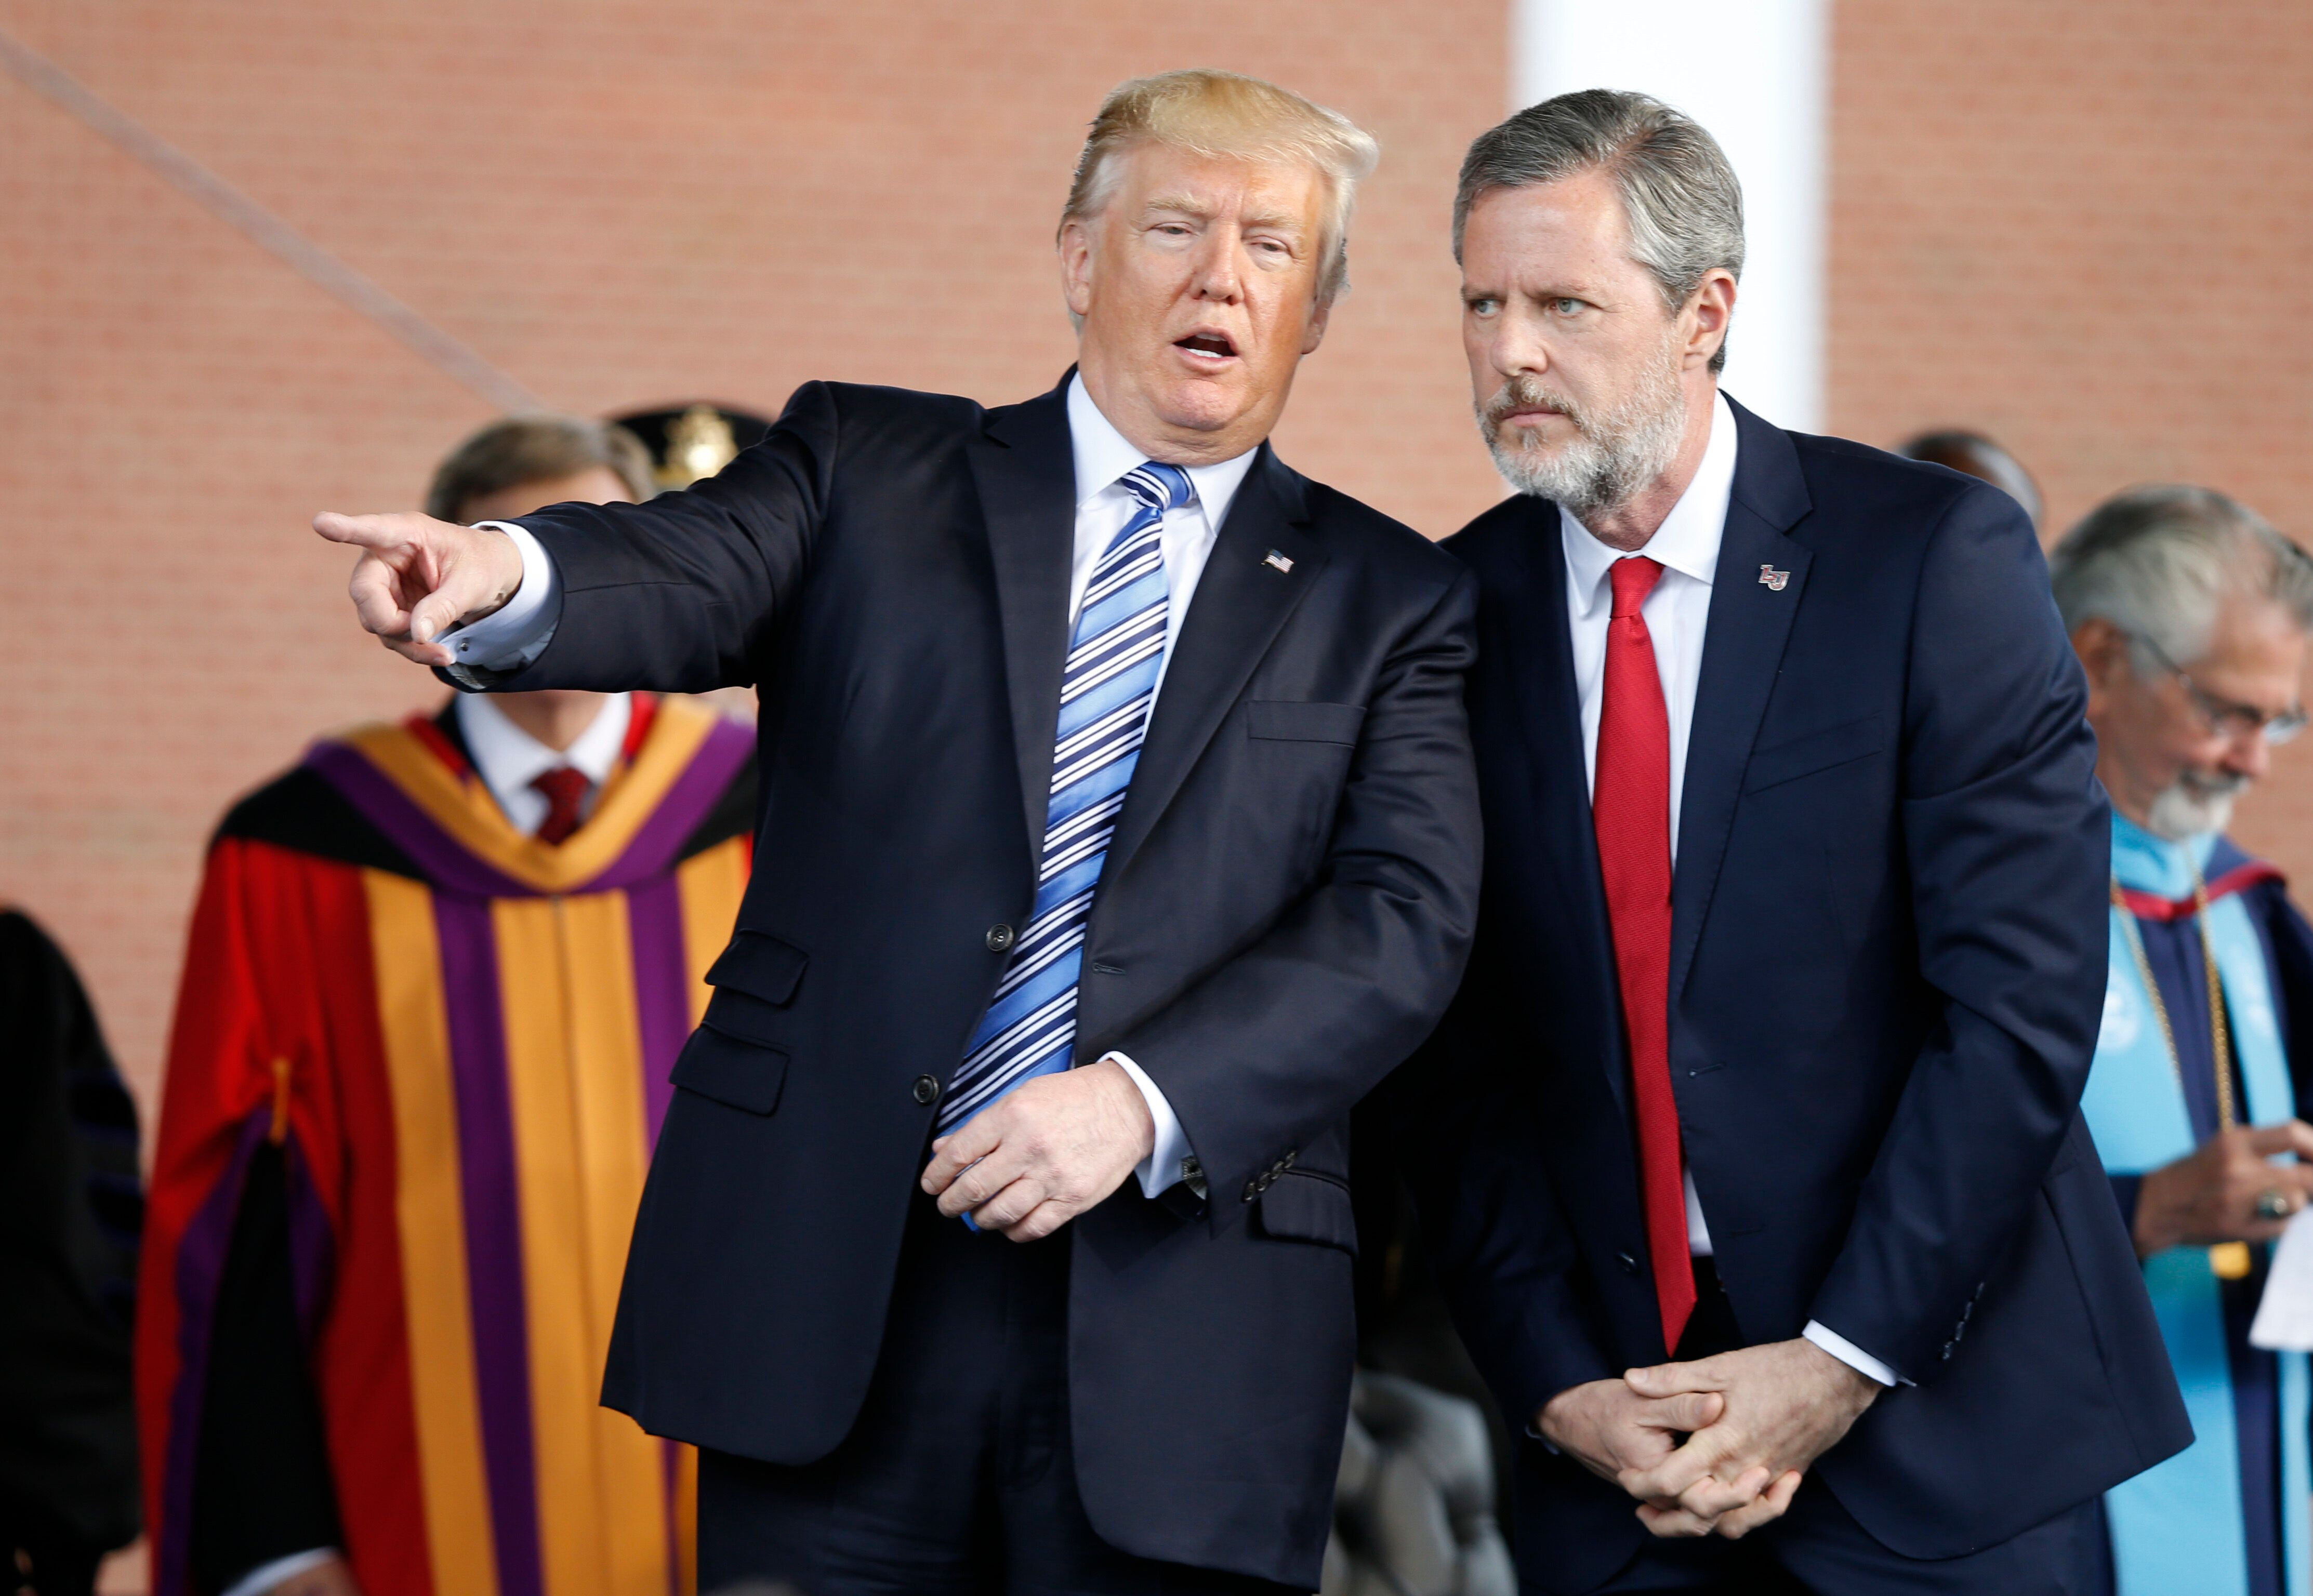 In this May 13, 2017 file photo, President Donald Trump gestures as he stands with Liberty University president, Jerry Falwel